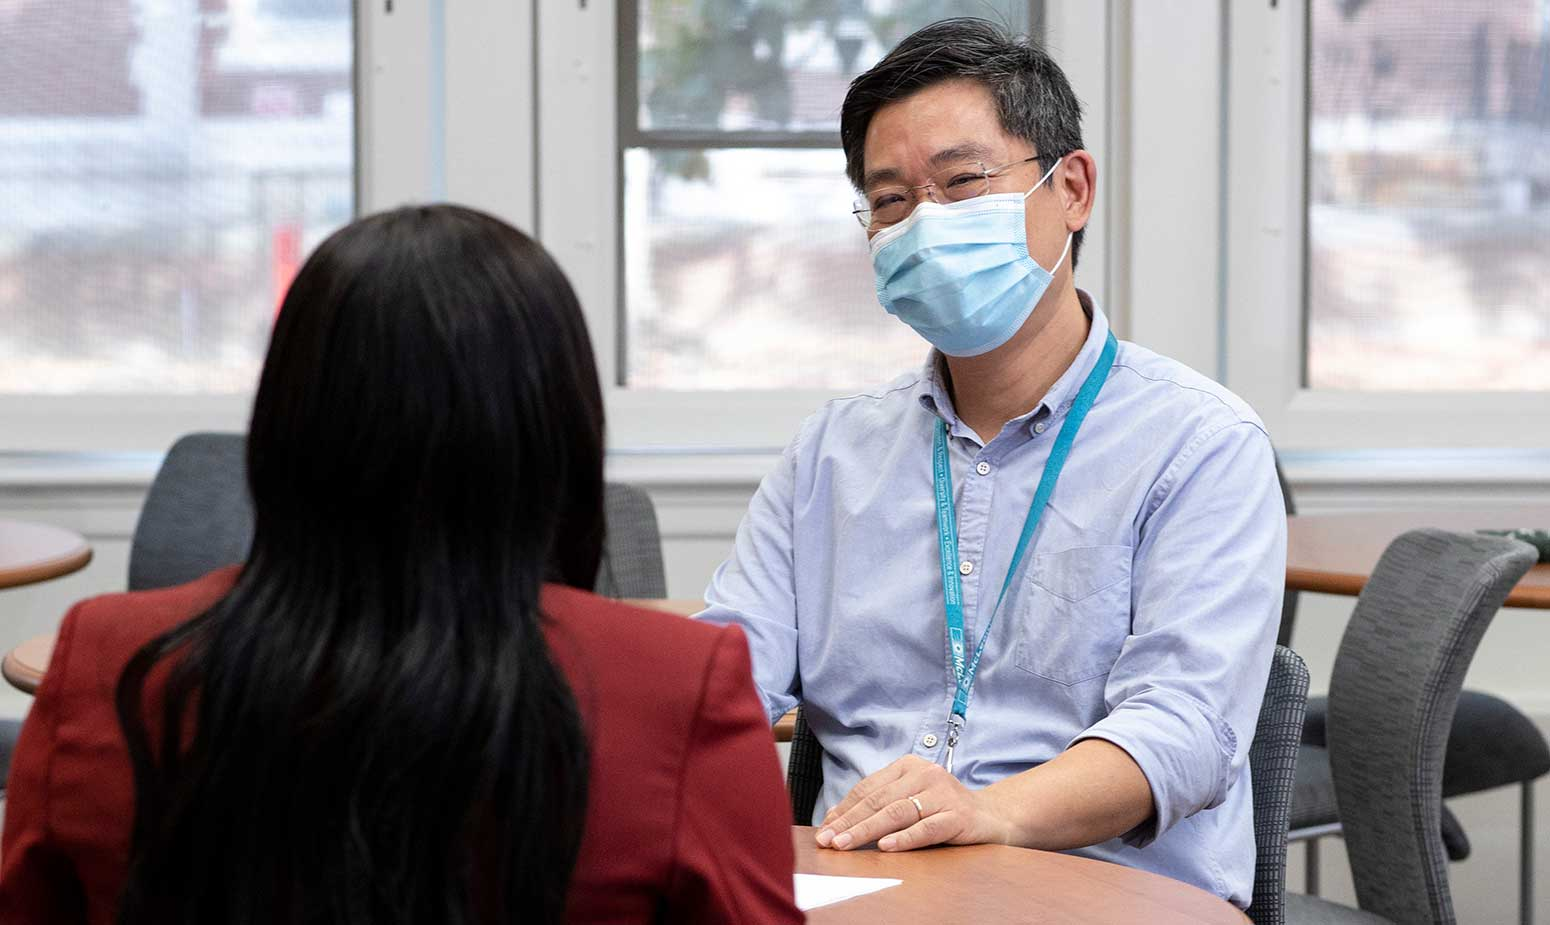 Clinicians in face masks speak, seated at table